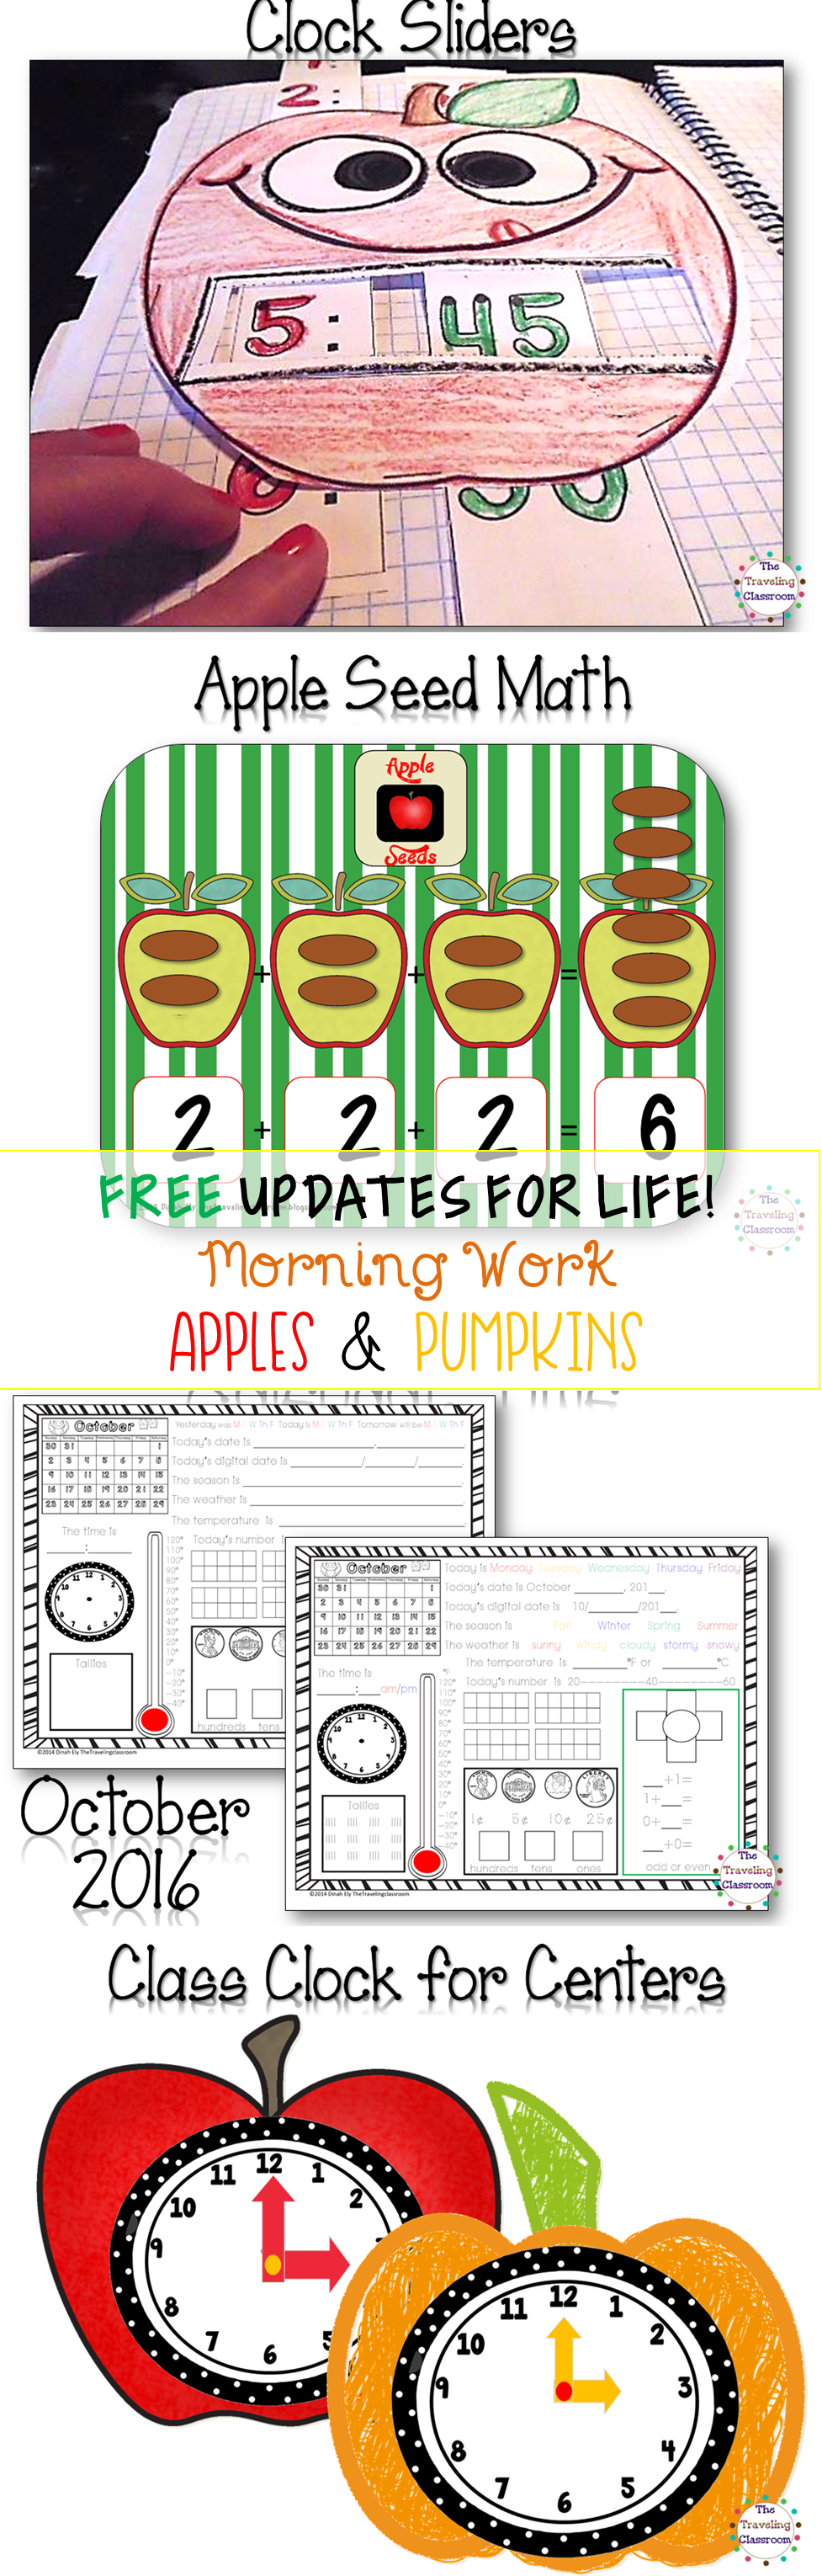 Wavelength Worksheets Excel Morning Work Calendar Time Worksheets  October  Notebooks  Multiplication Facts Worksheets Free Pdf with My Favorite Things Worksheet Excel The Complete October Calendar Time Worksheet Set Is Perfect For Morning  Work And Setting New Routines 3rd Grade Reading Comprehension Worksheets Multiple Choice